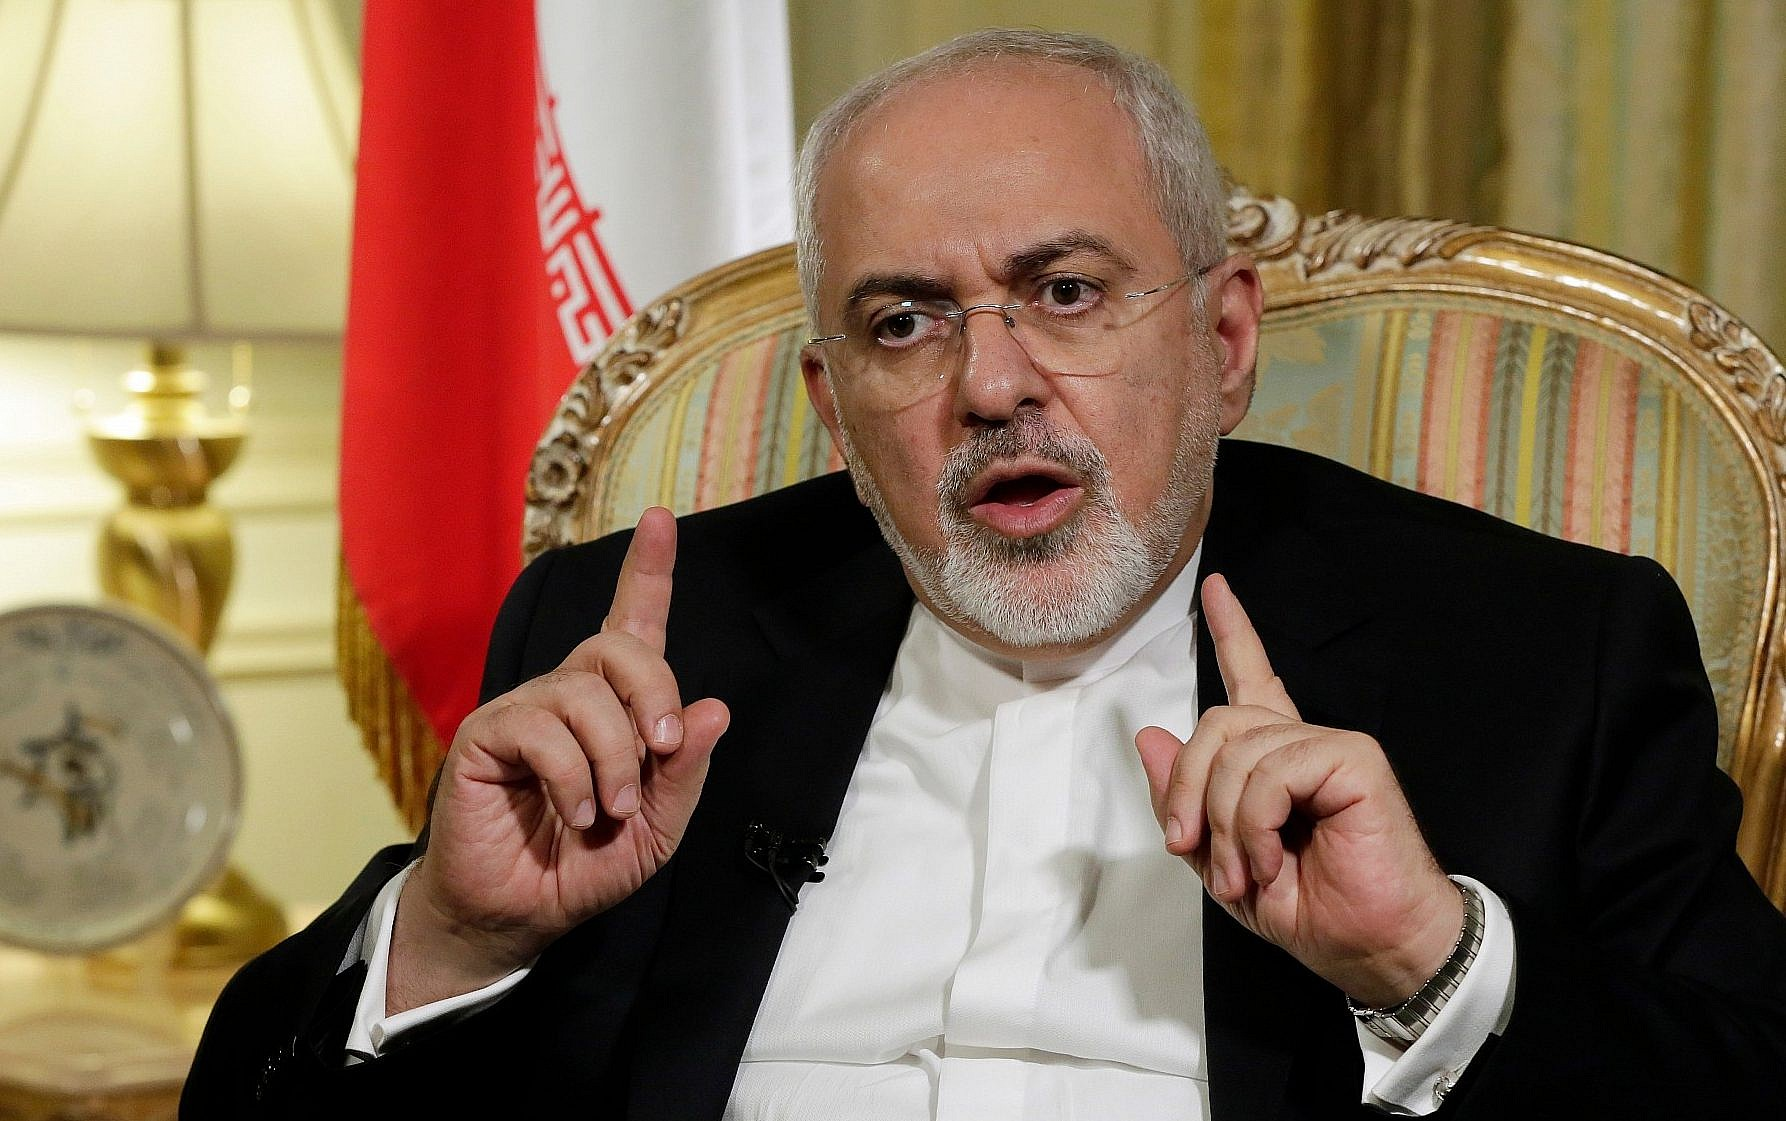 Iran Foreign Minister Mohammad Javad Zarif visits Lebanon, offers support for new government